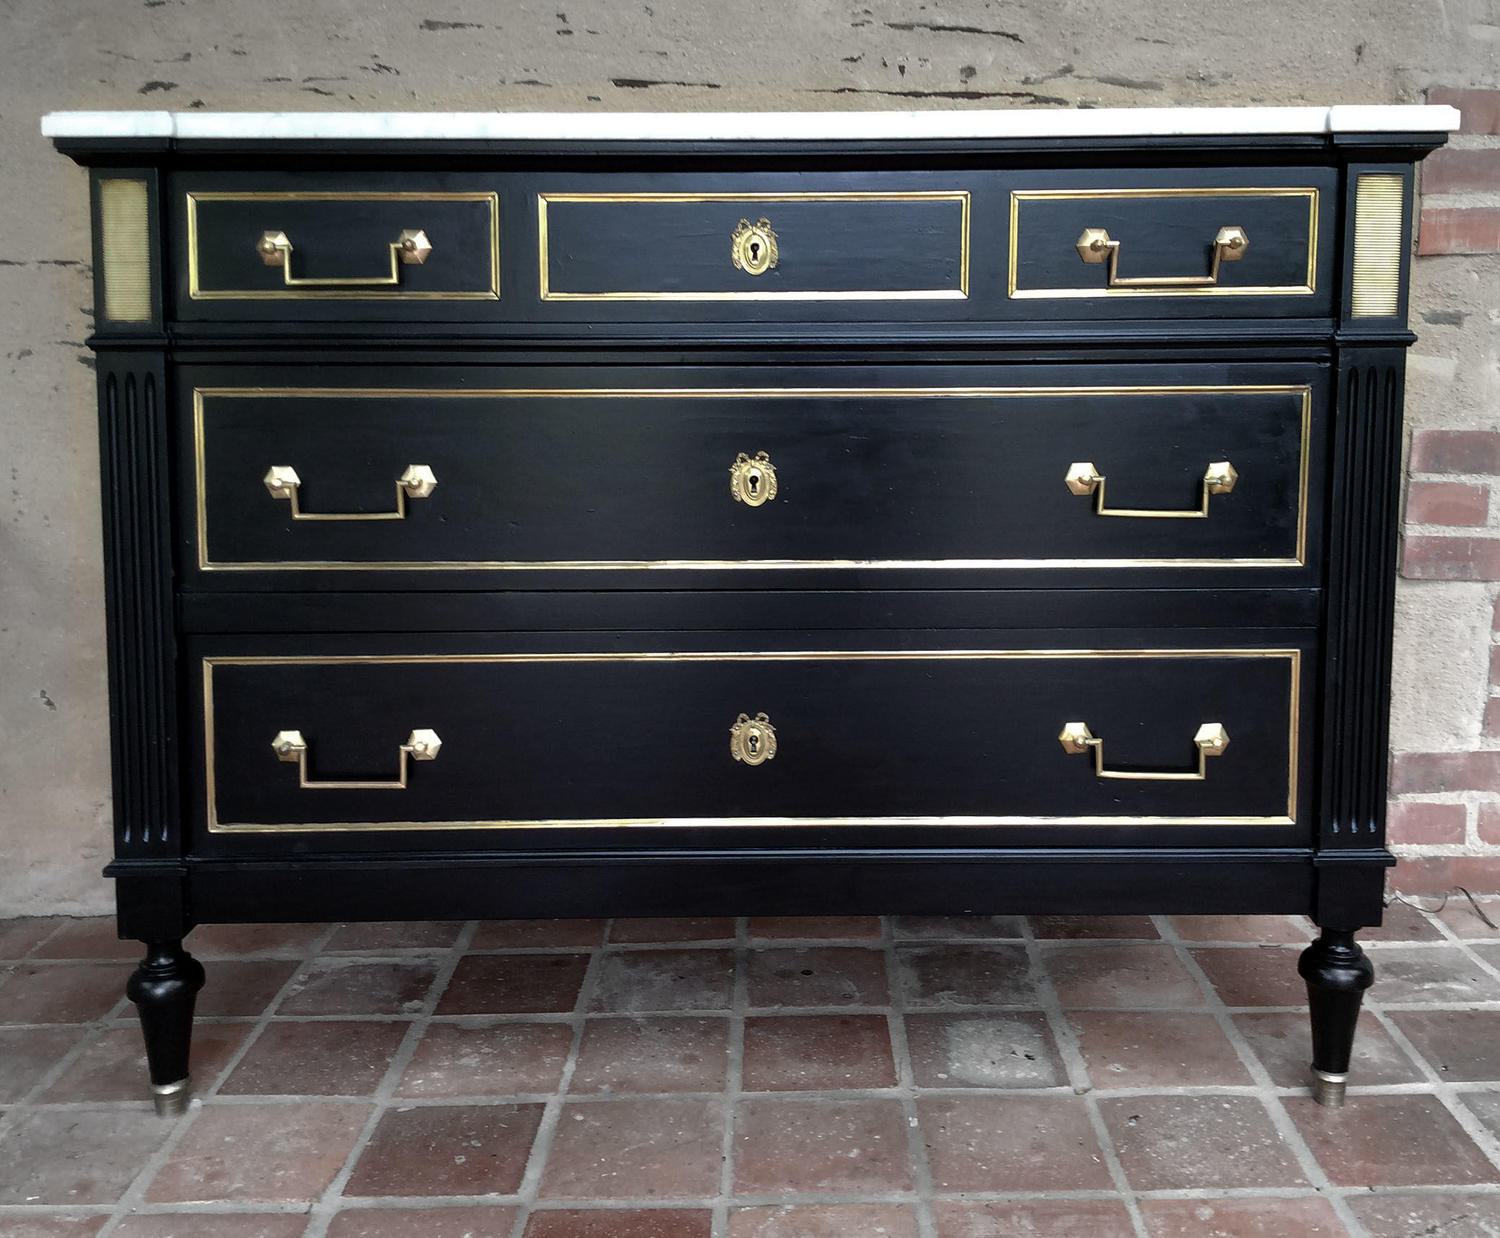 Louis XVI style marble top black commode